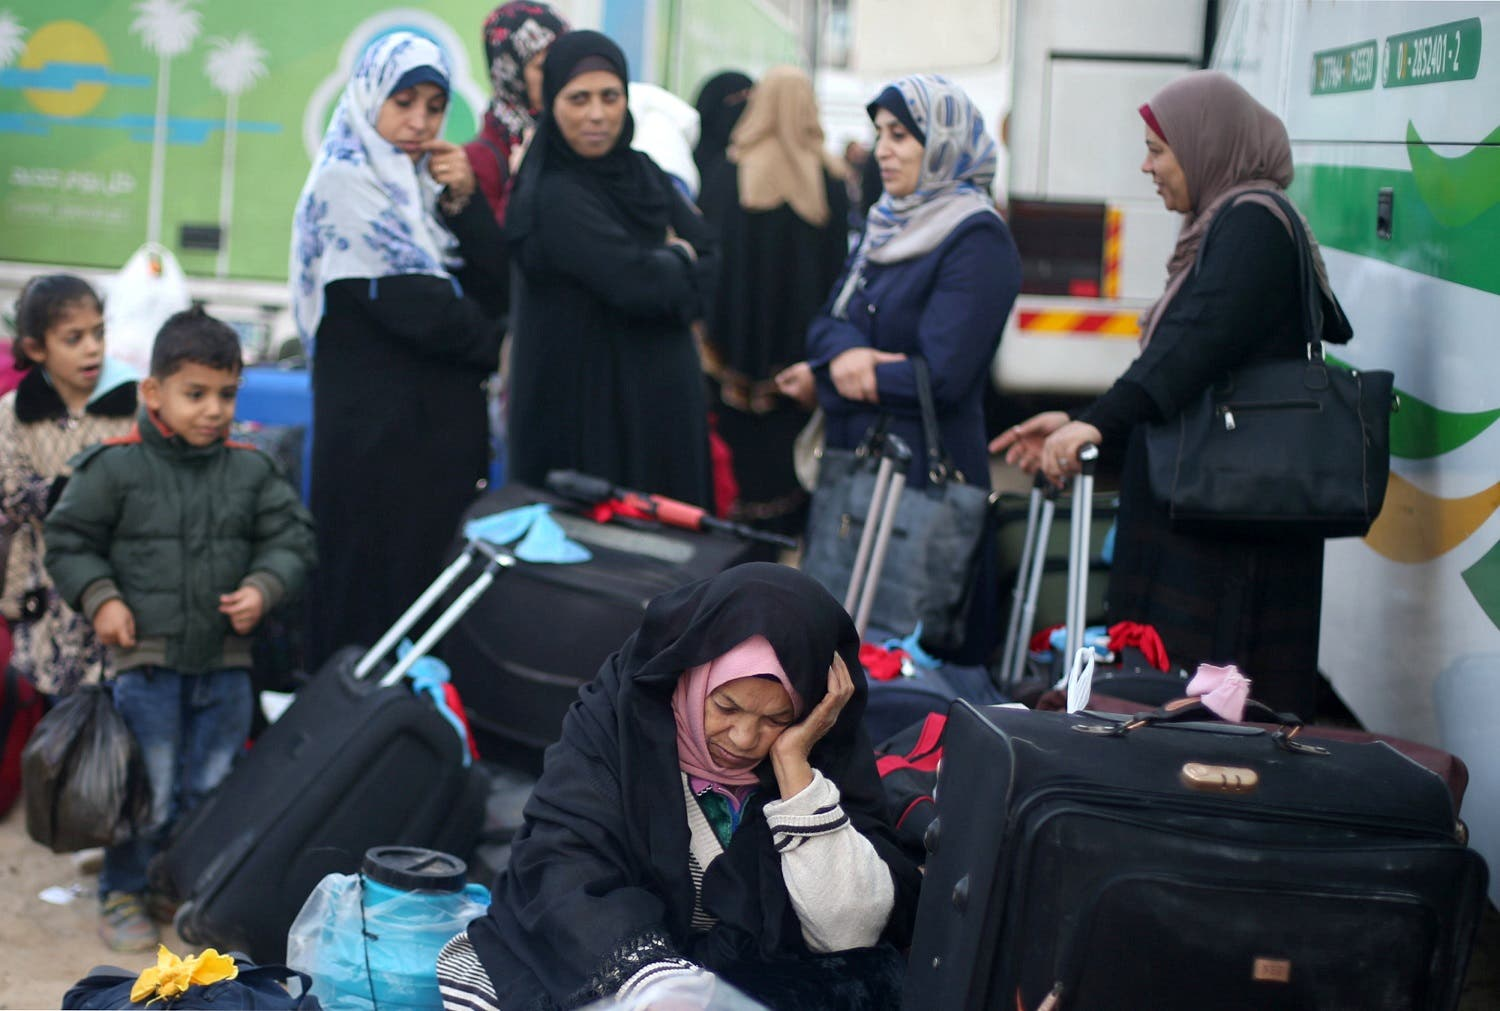 Palestinians wait for travel permits to cross into Egypt, for the first time after Hamas ceded Rafah border crossing to the Palestinian Authority, in Khan Younis in the southern Gaza Strip November 18, 2017. (Reuters)